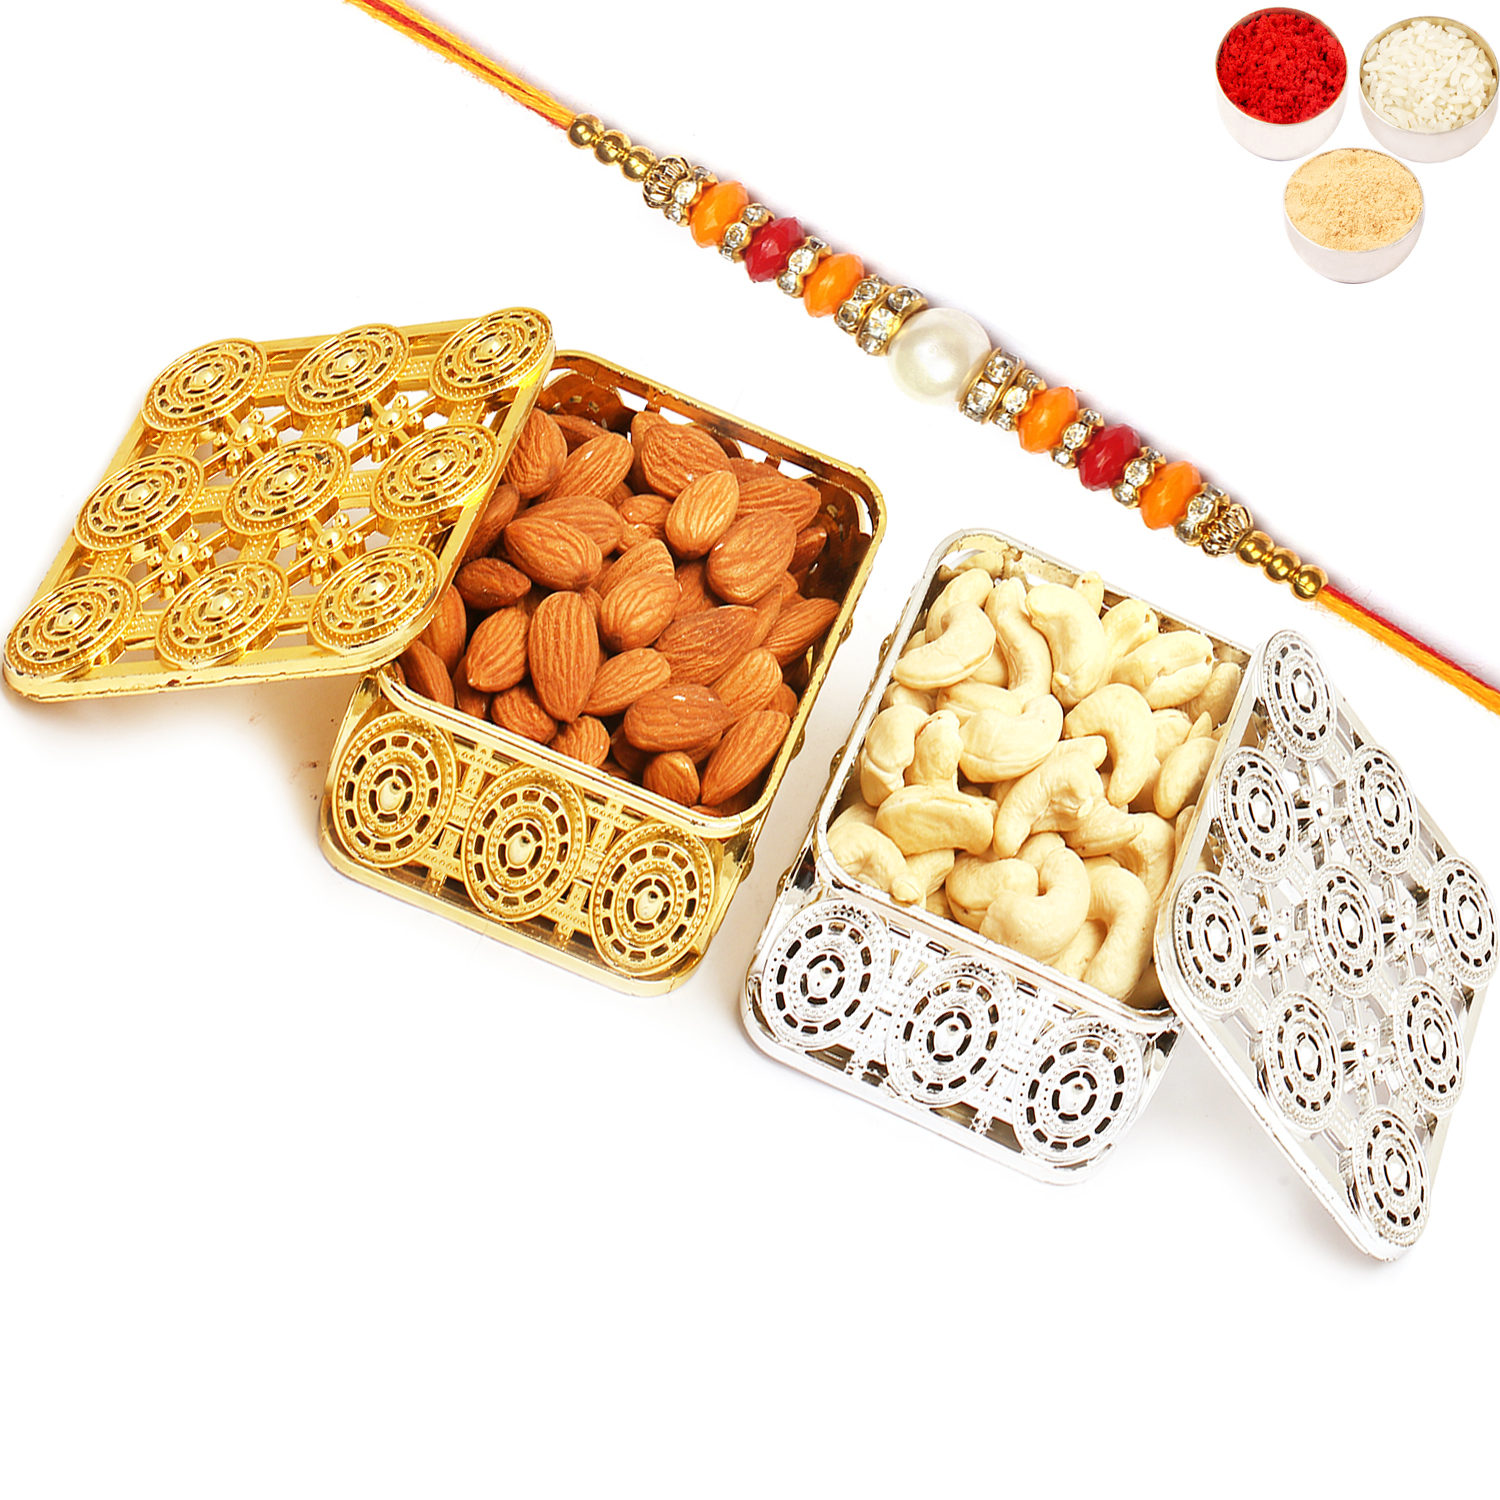 Silver and Gold Almonds and Cashews Boxes with Pearl Diamond Rakhi